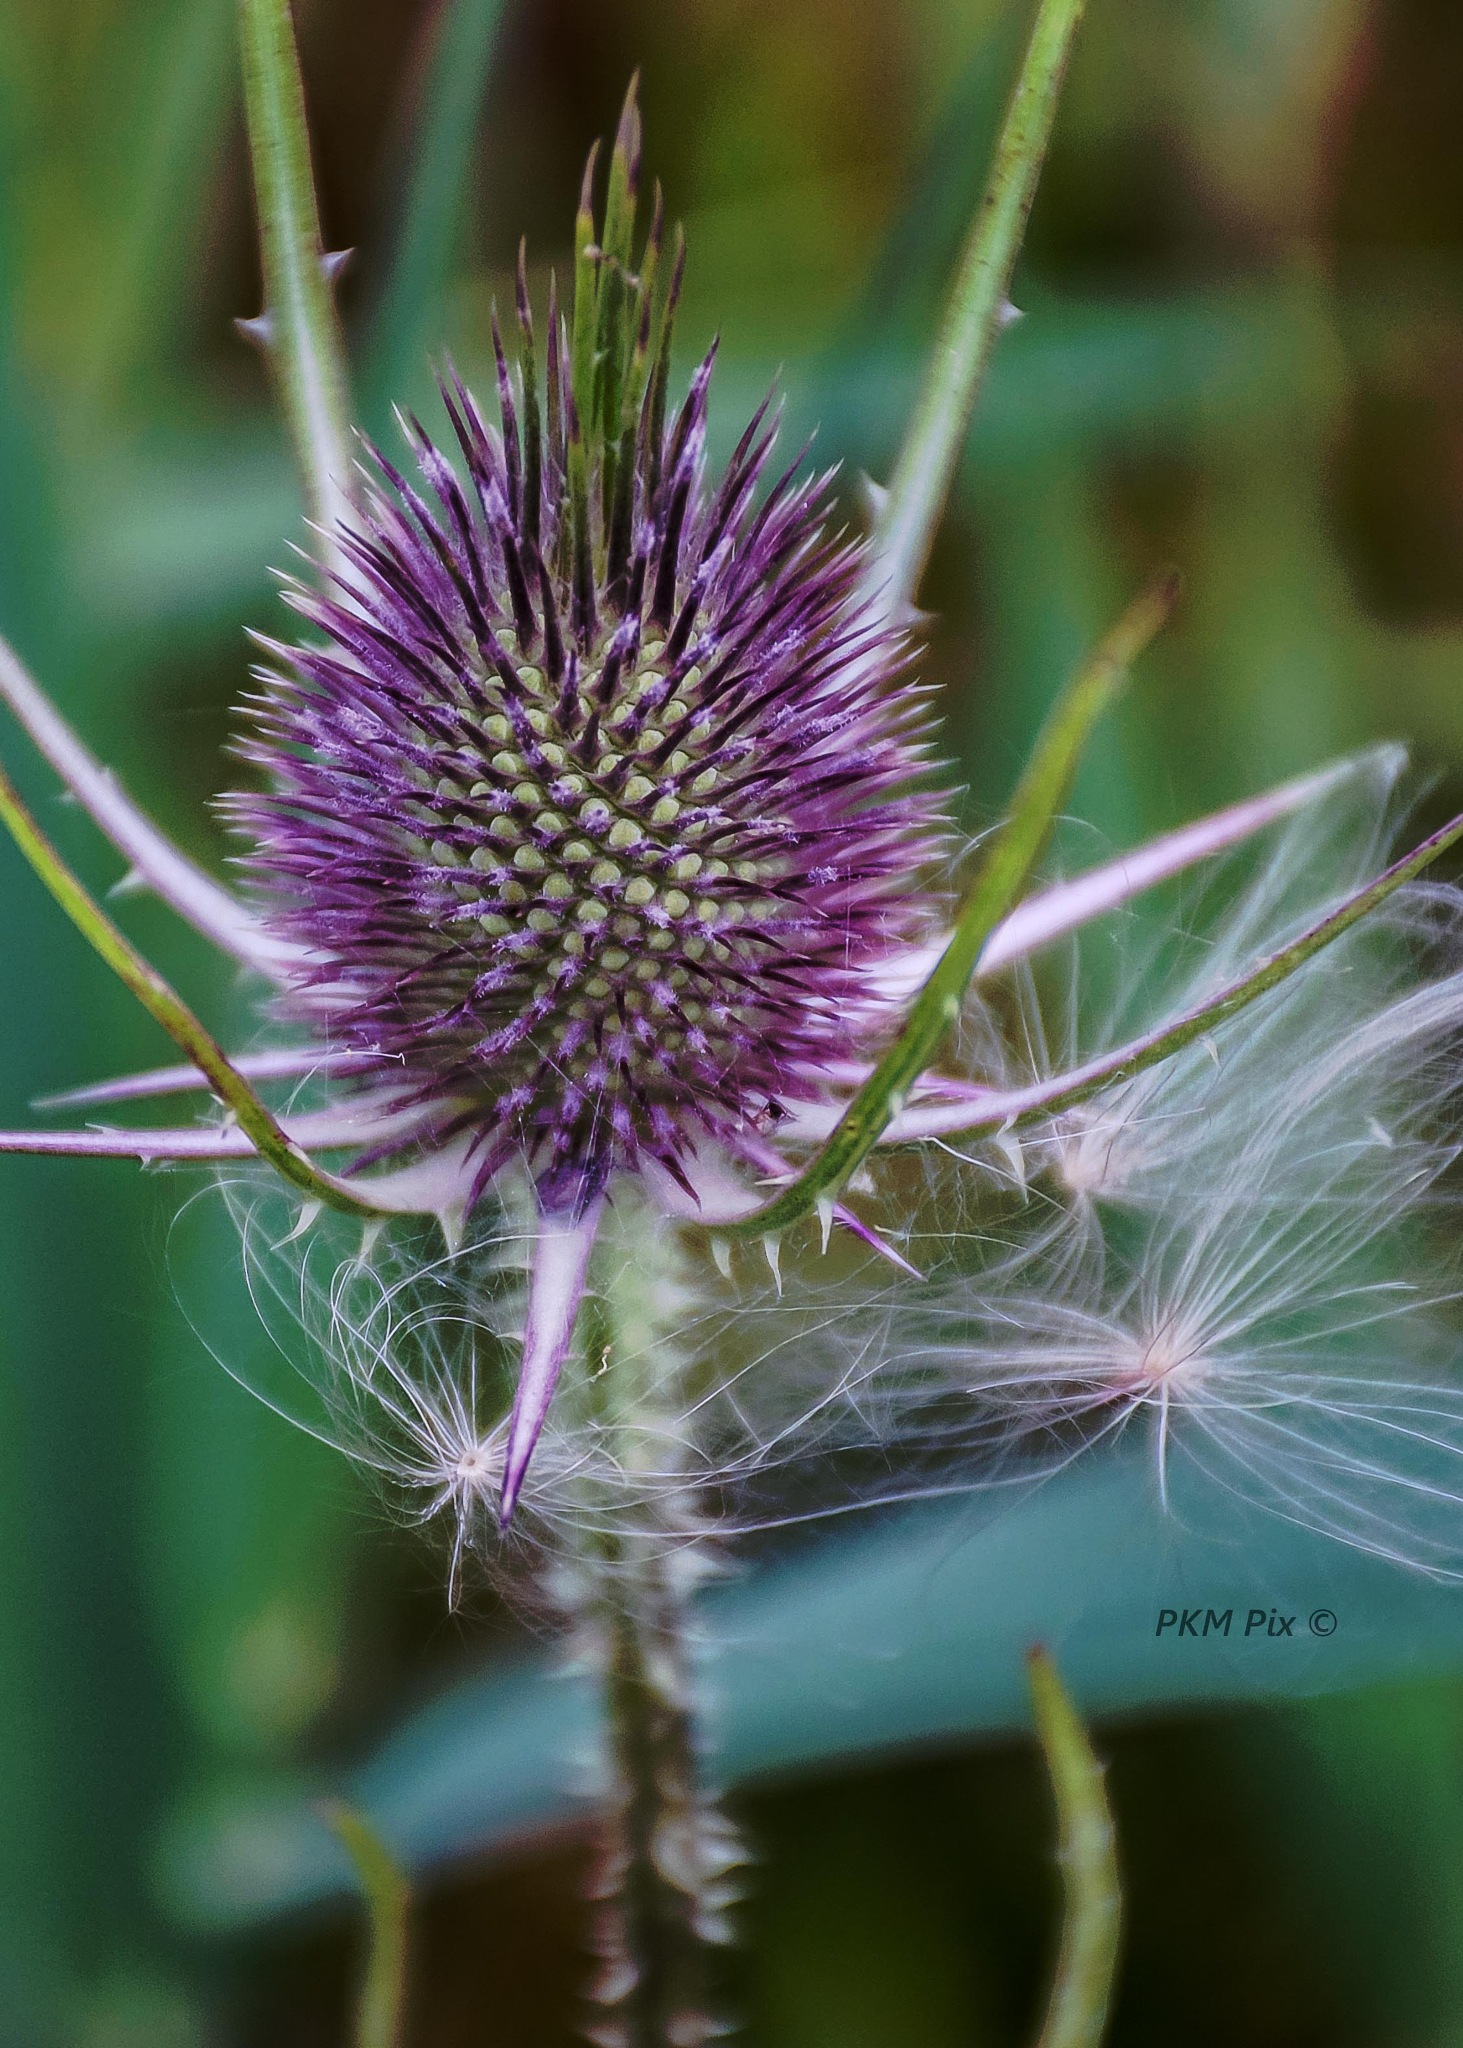 Thistle by pam.satterfieldmanning